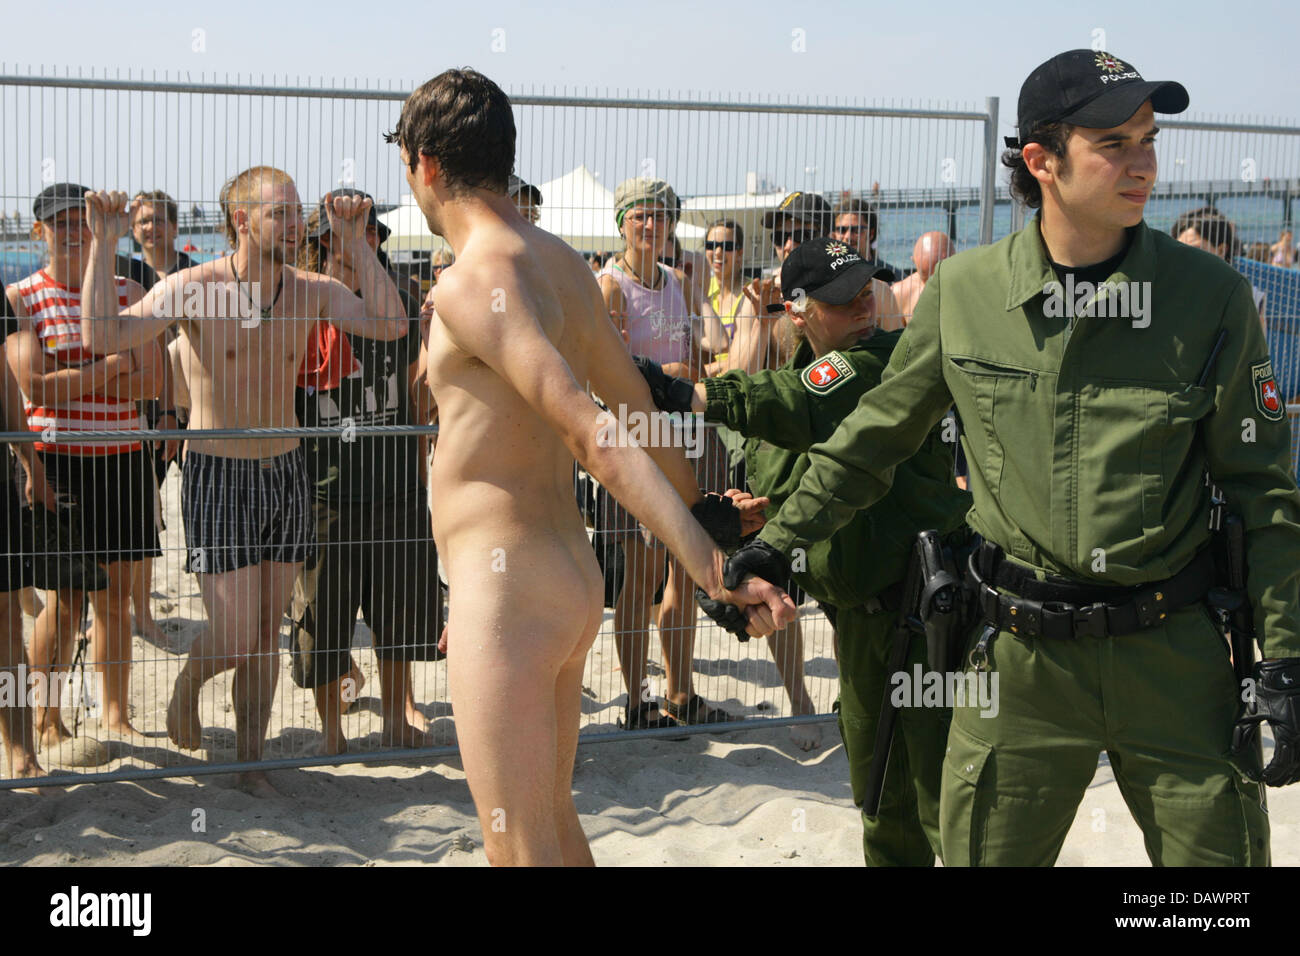 Free naked pictures of police